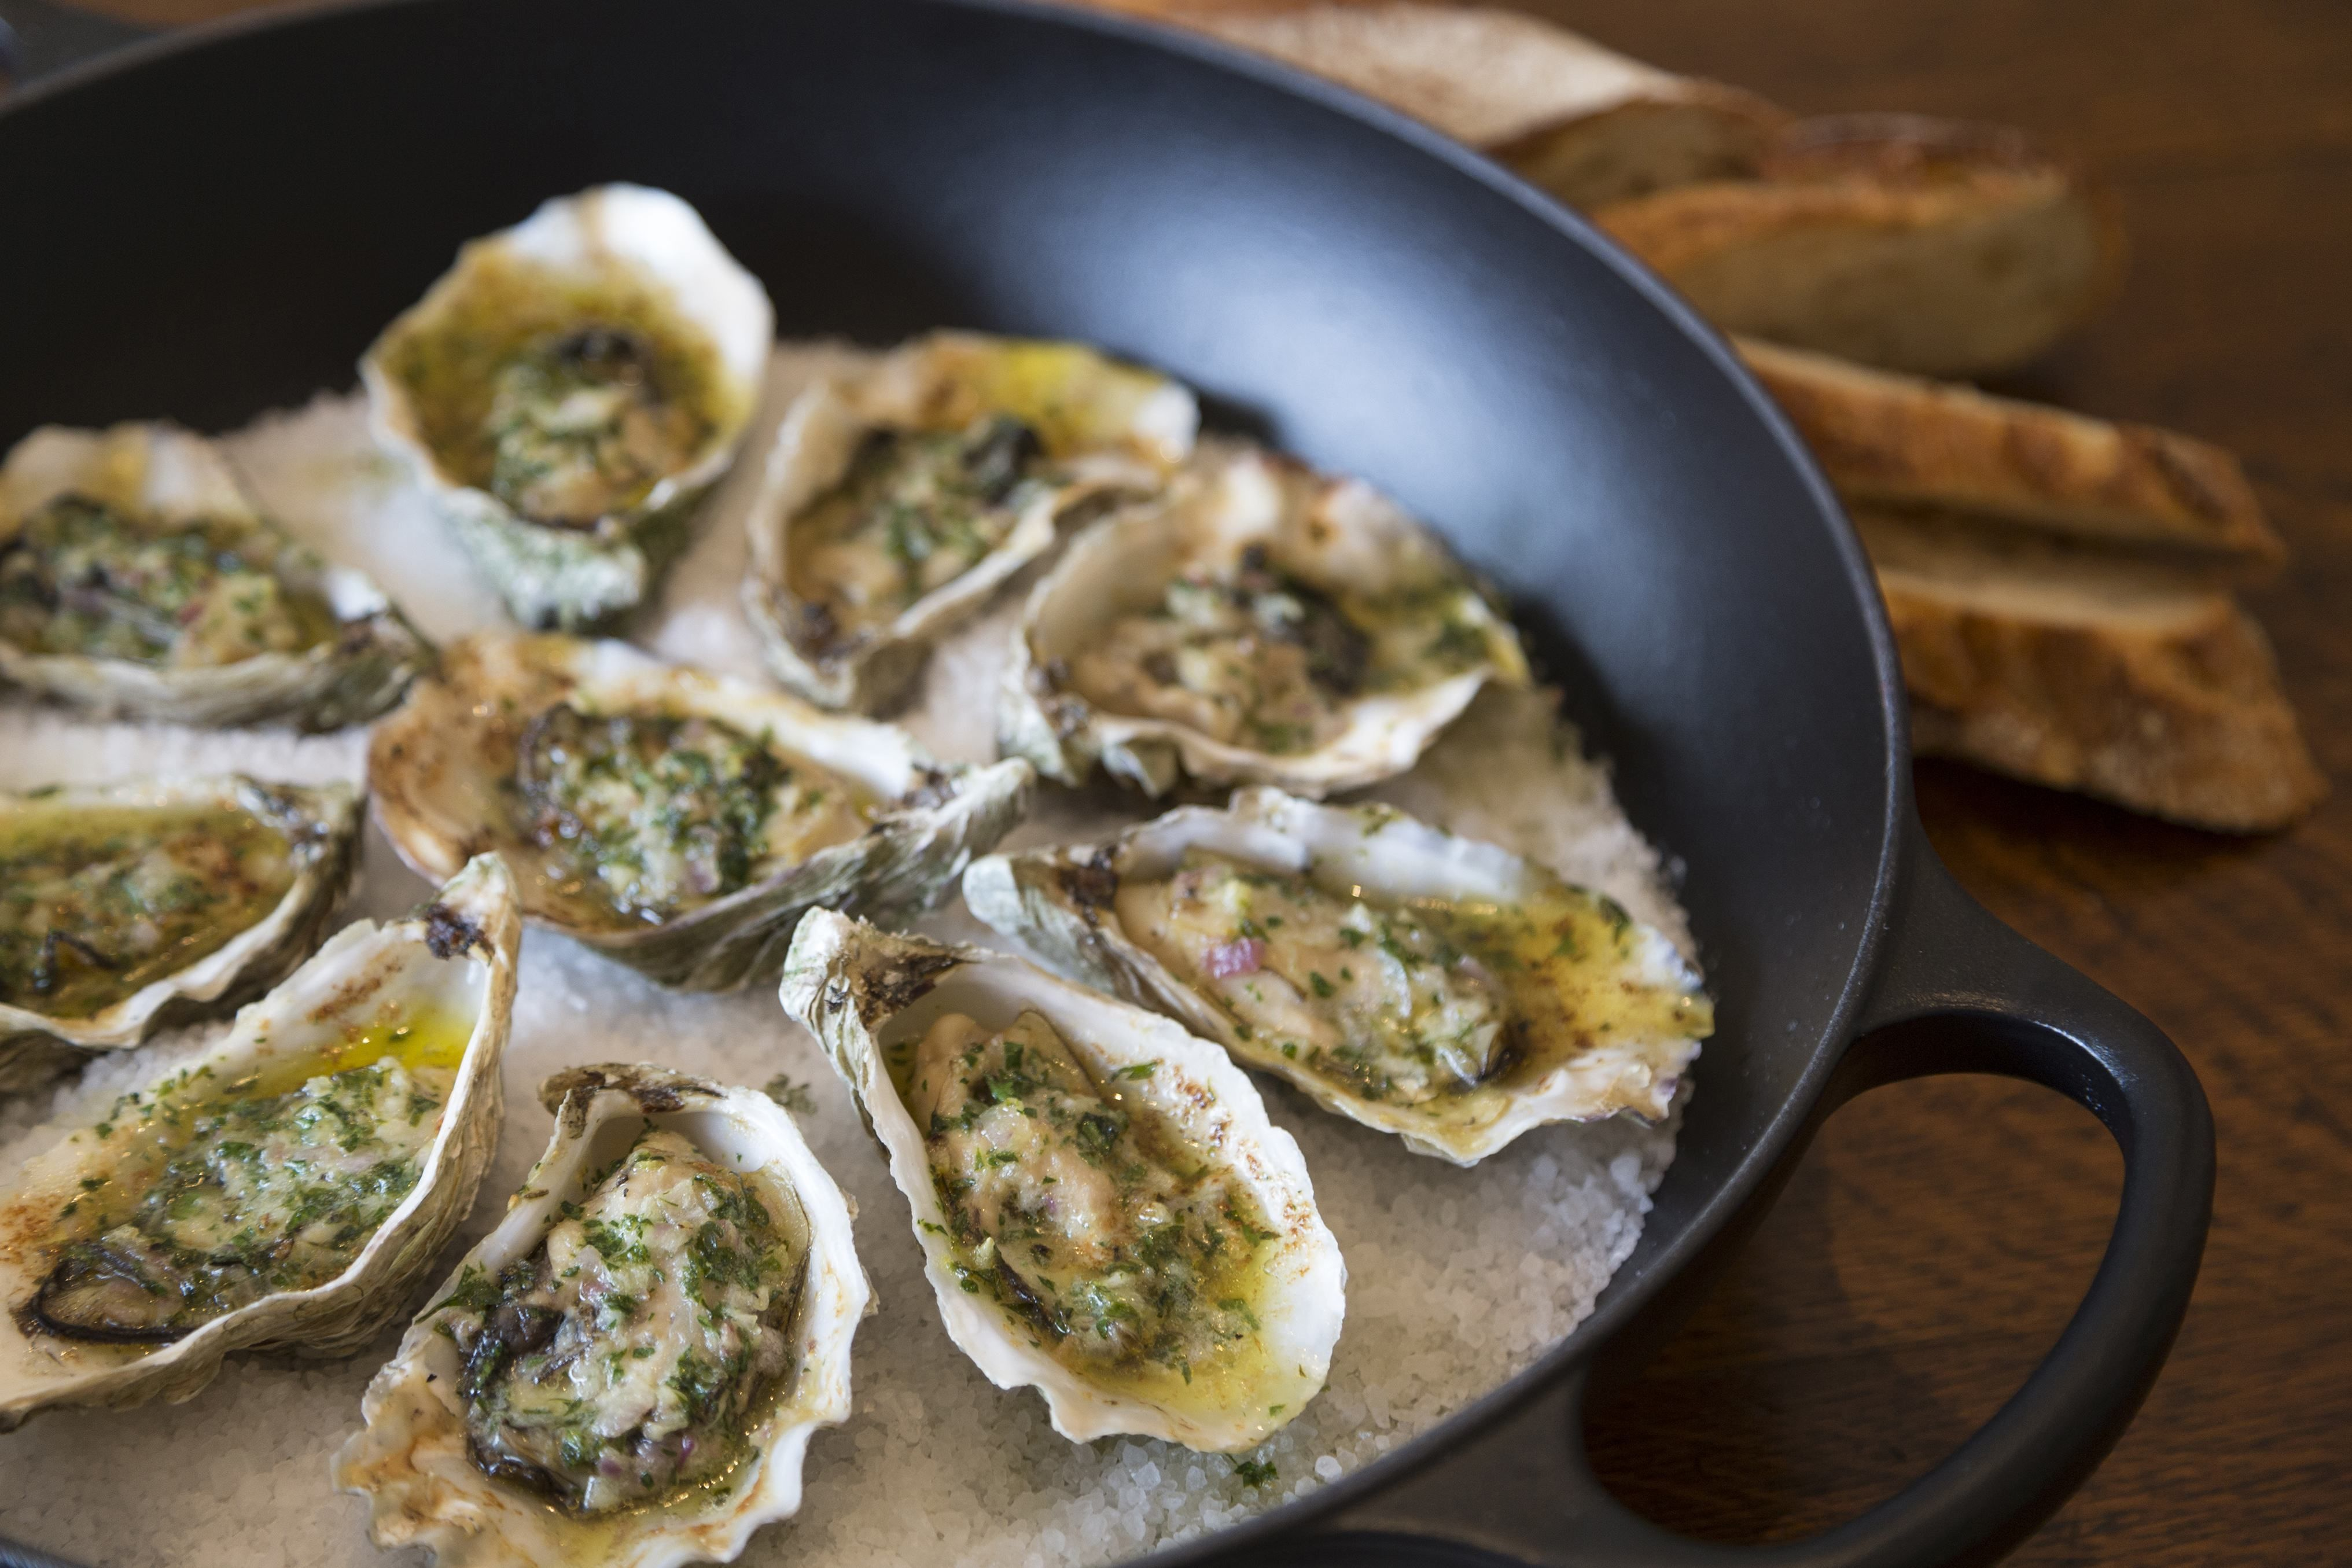 Grilled oysters with parsley and garlic butter recipe